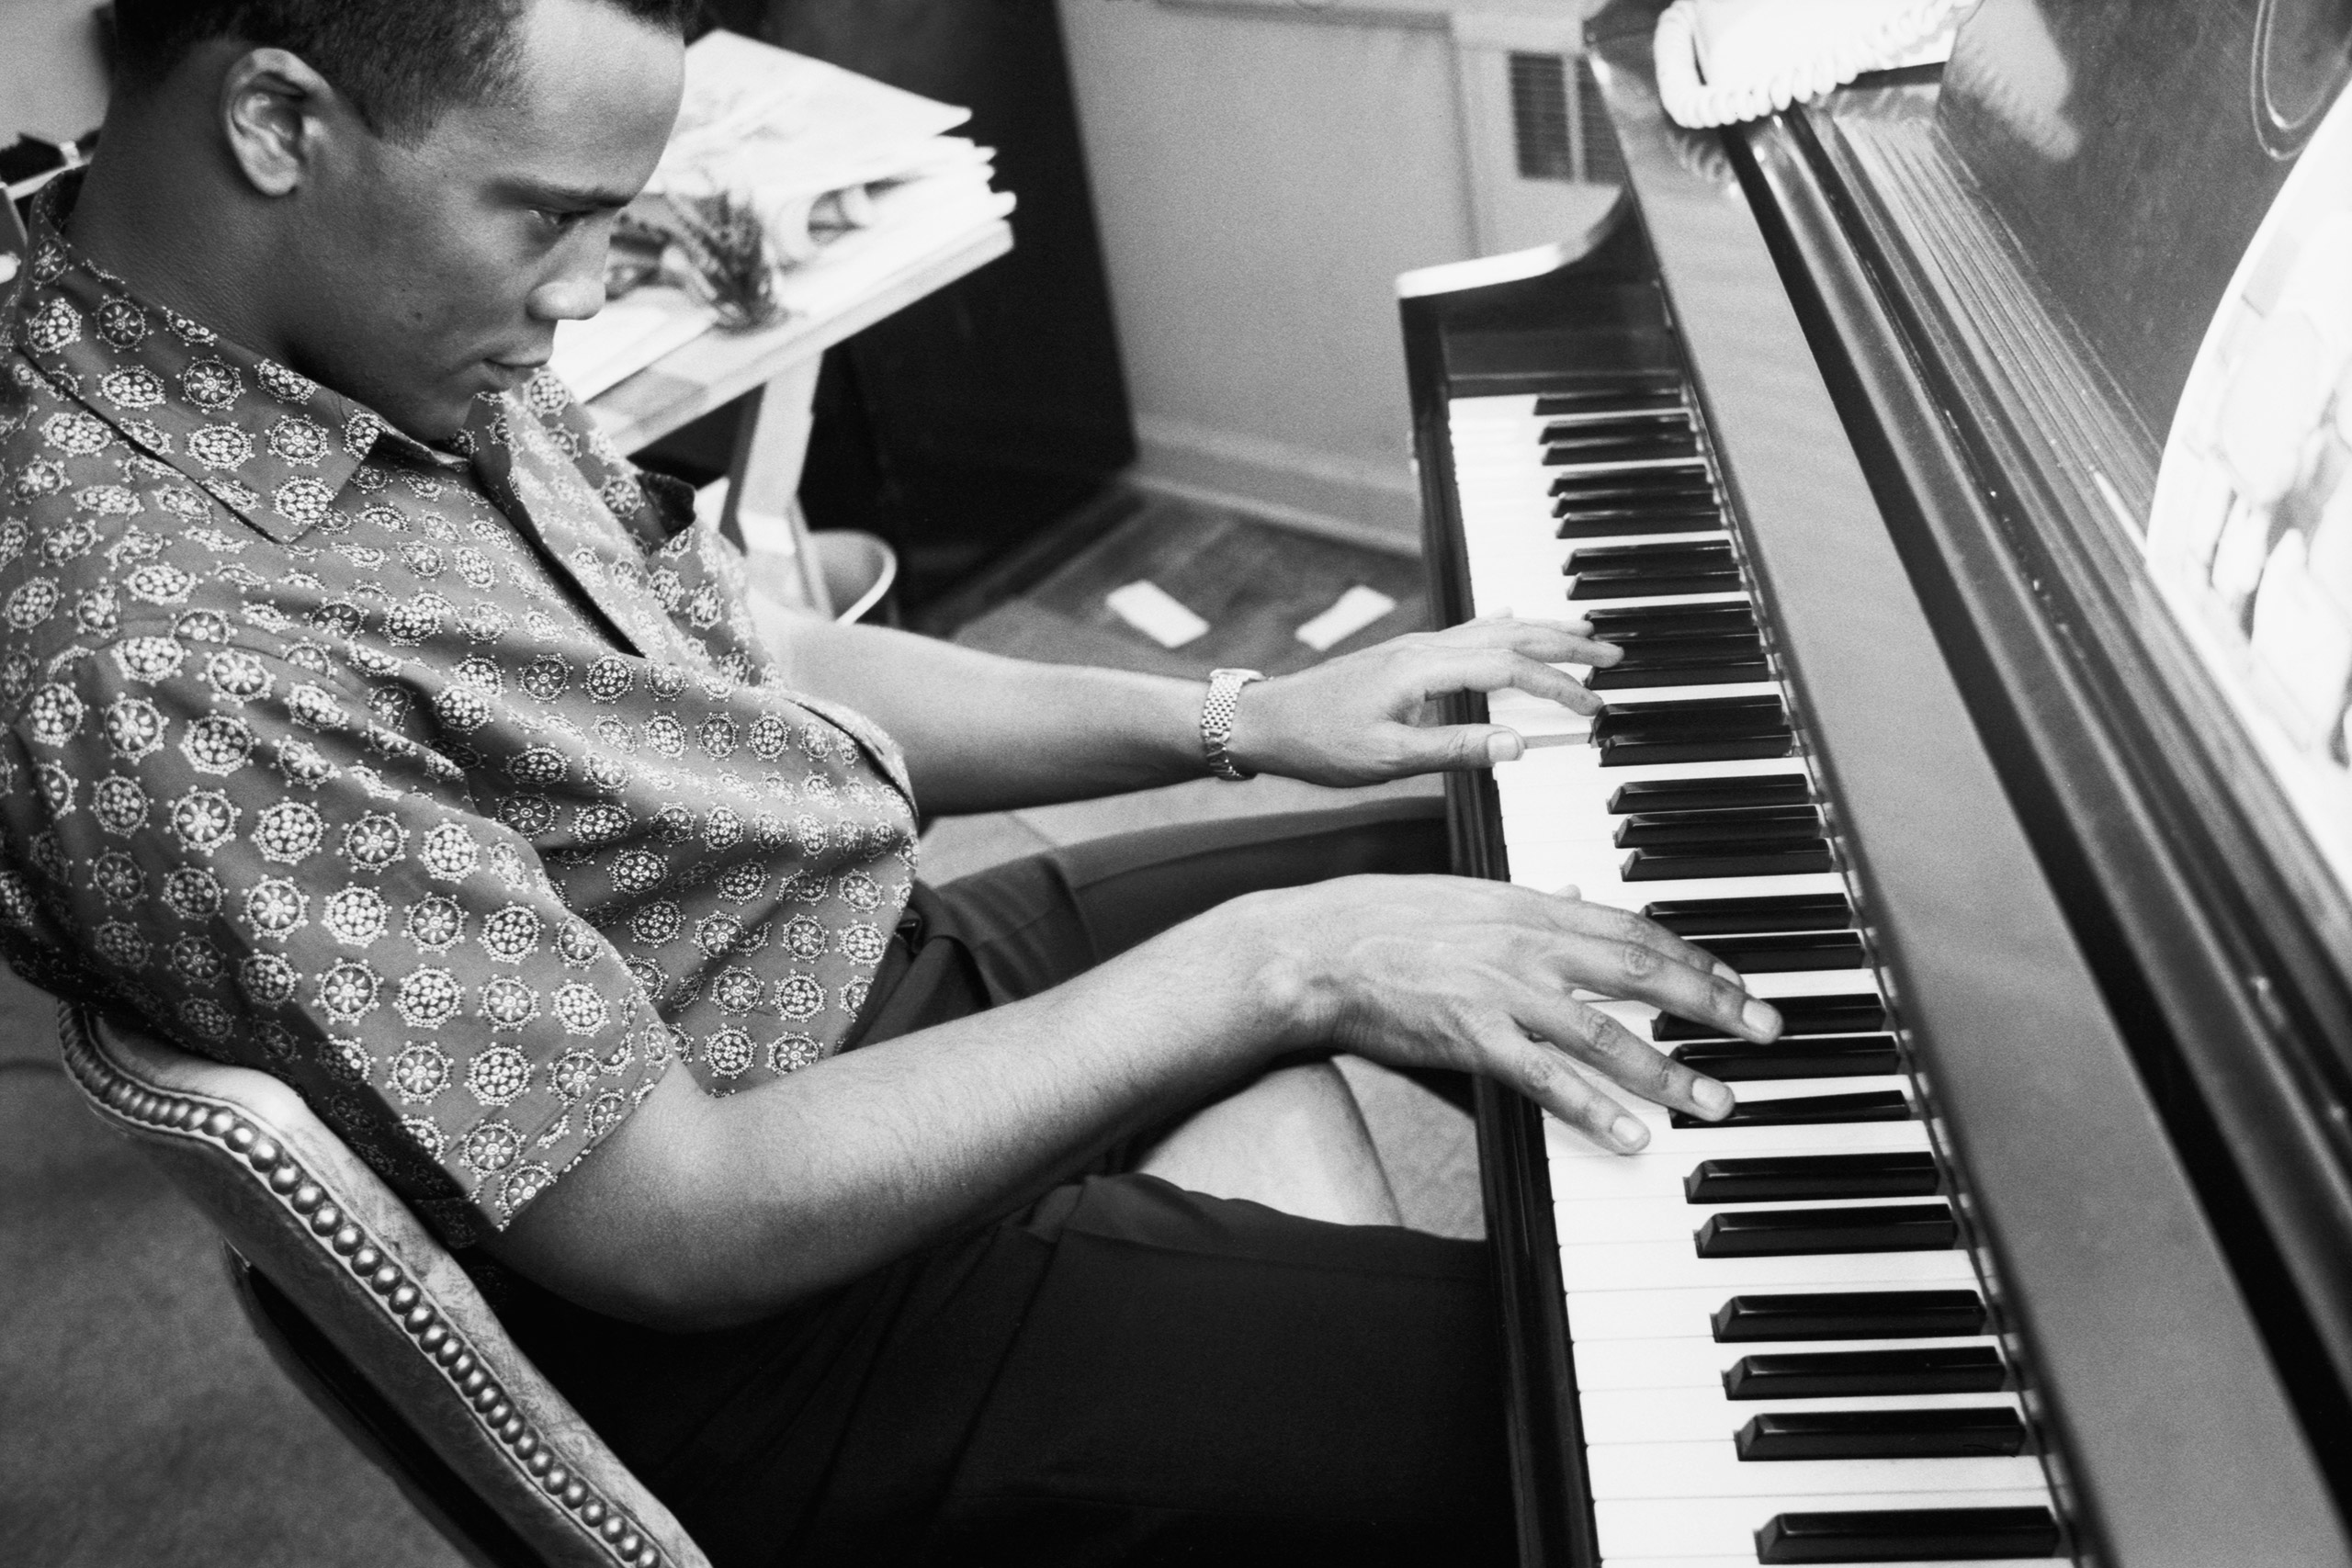 American record producer, conductor, arranger, composer and musician Quincy Jones playing piano at his home.